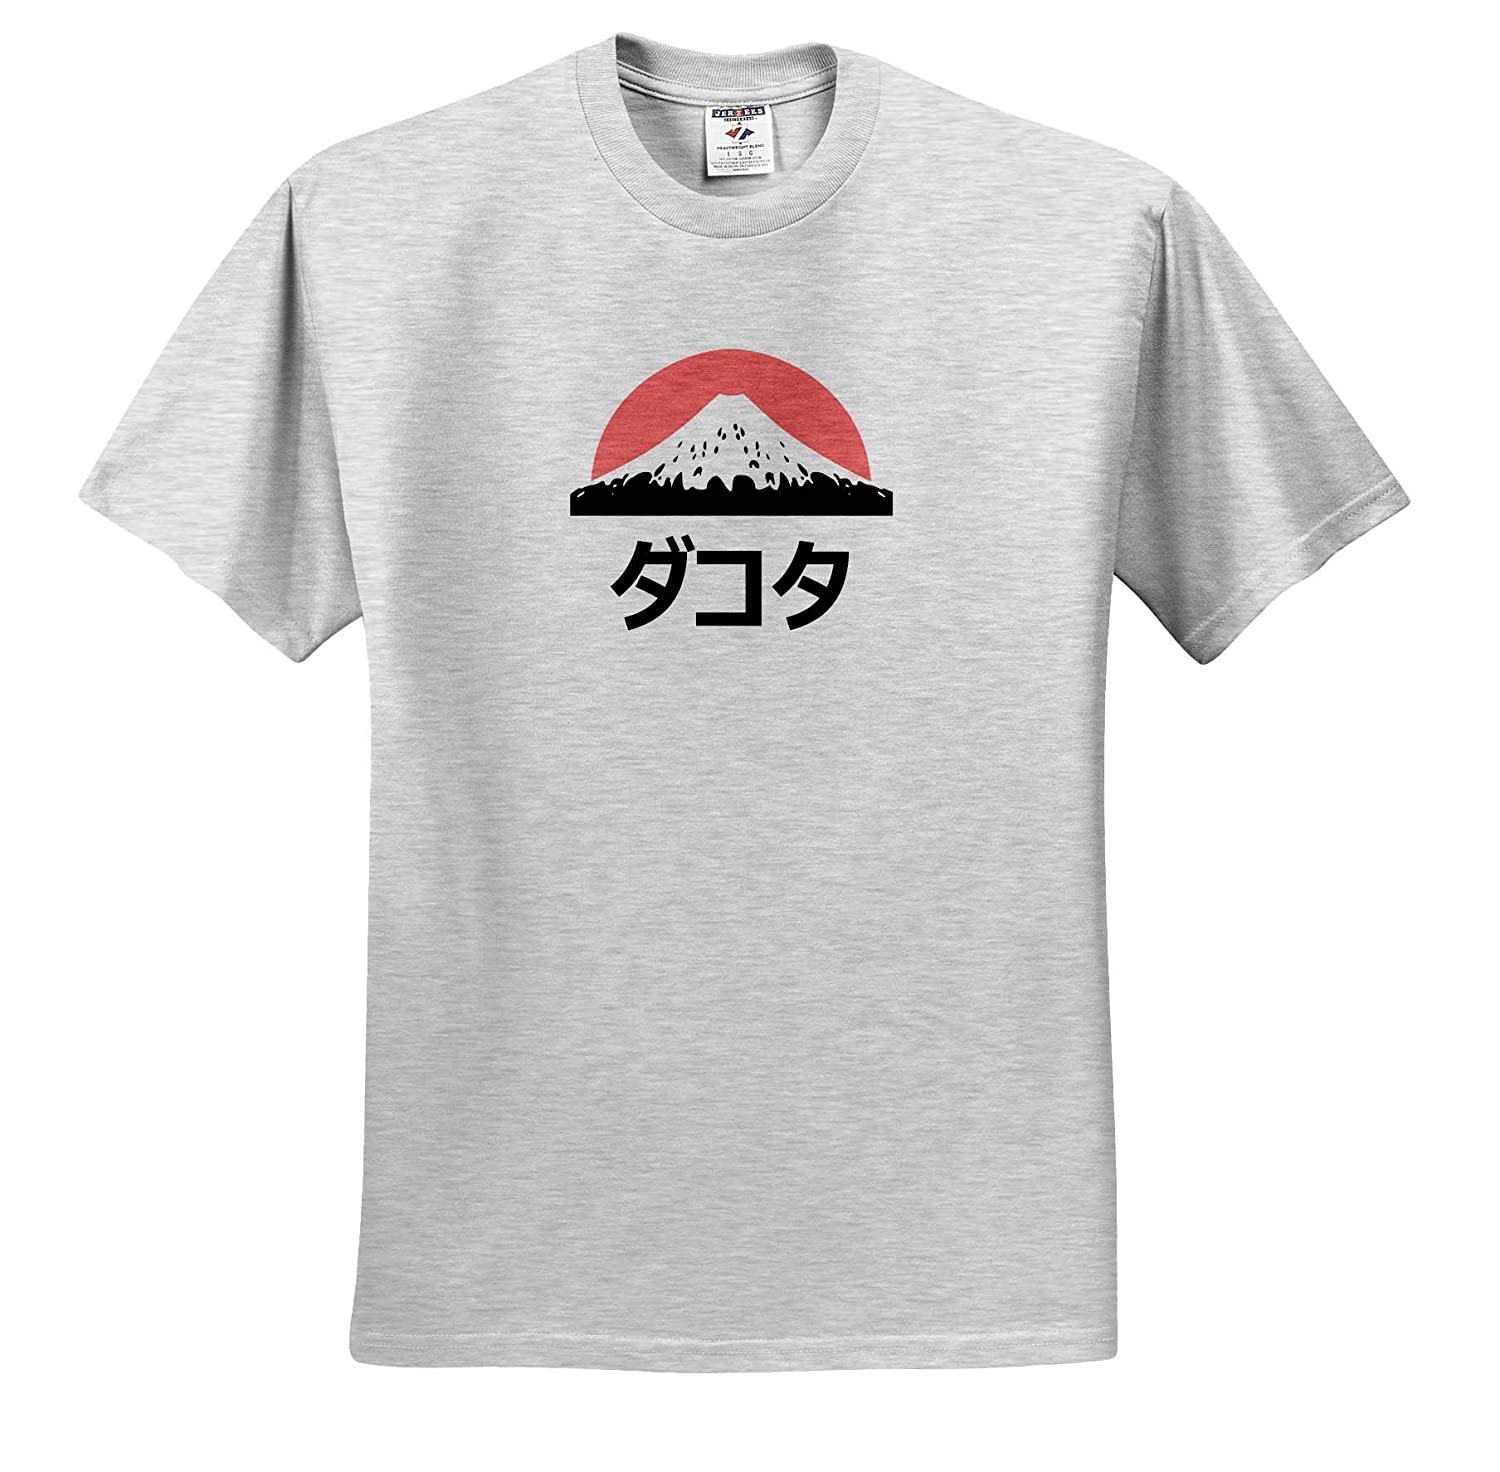 Name in Japanese ts/_320463 3dRose InspirationzStore Adult T-Shirt XL Dakota in Japanese Letters